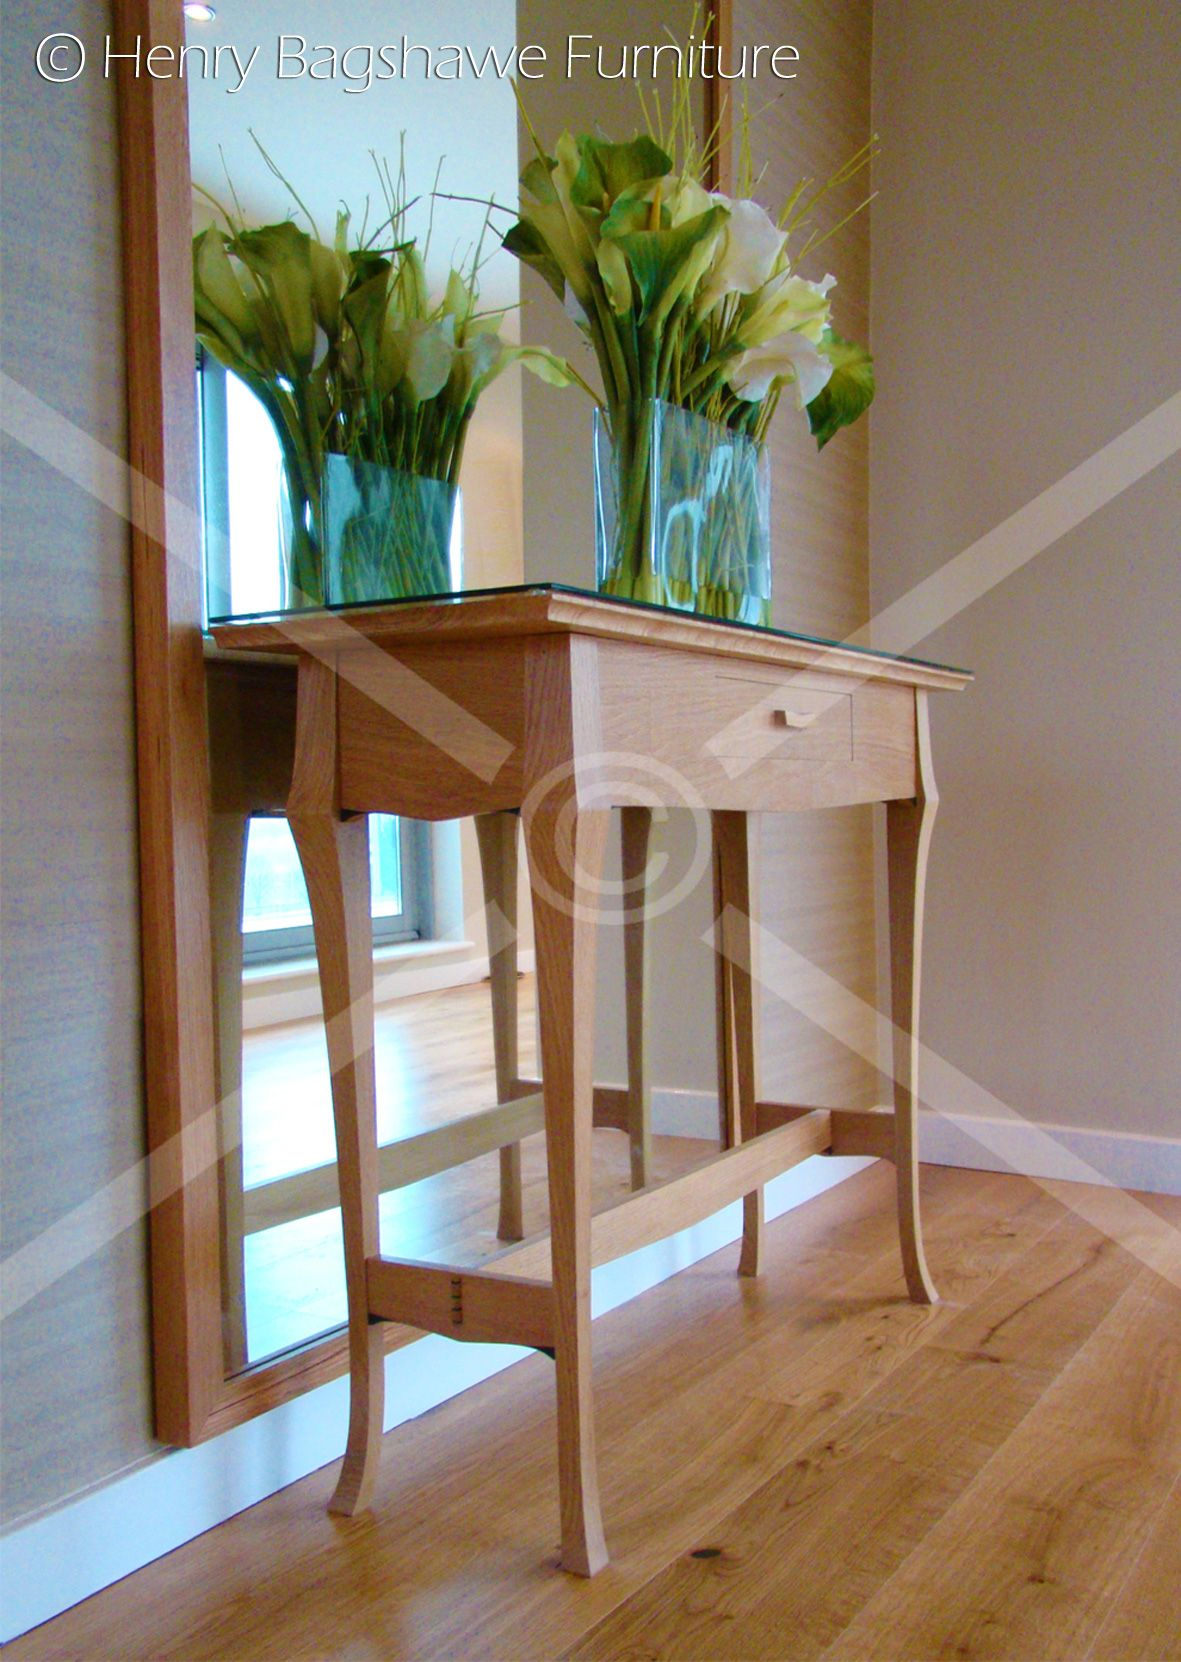 Hallway furniture b&m  Oak hall table  Past Furniture Commissions  Pinterest  Hall